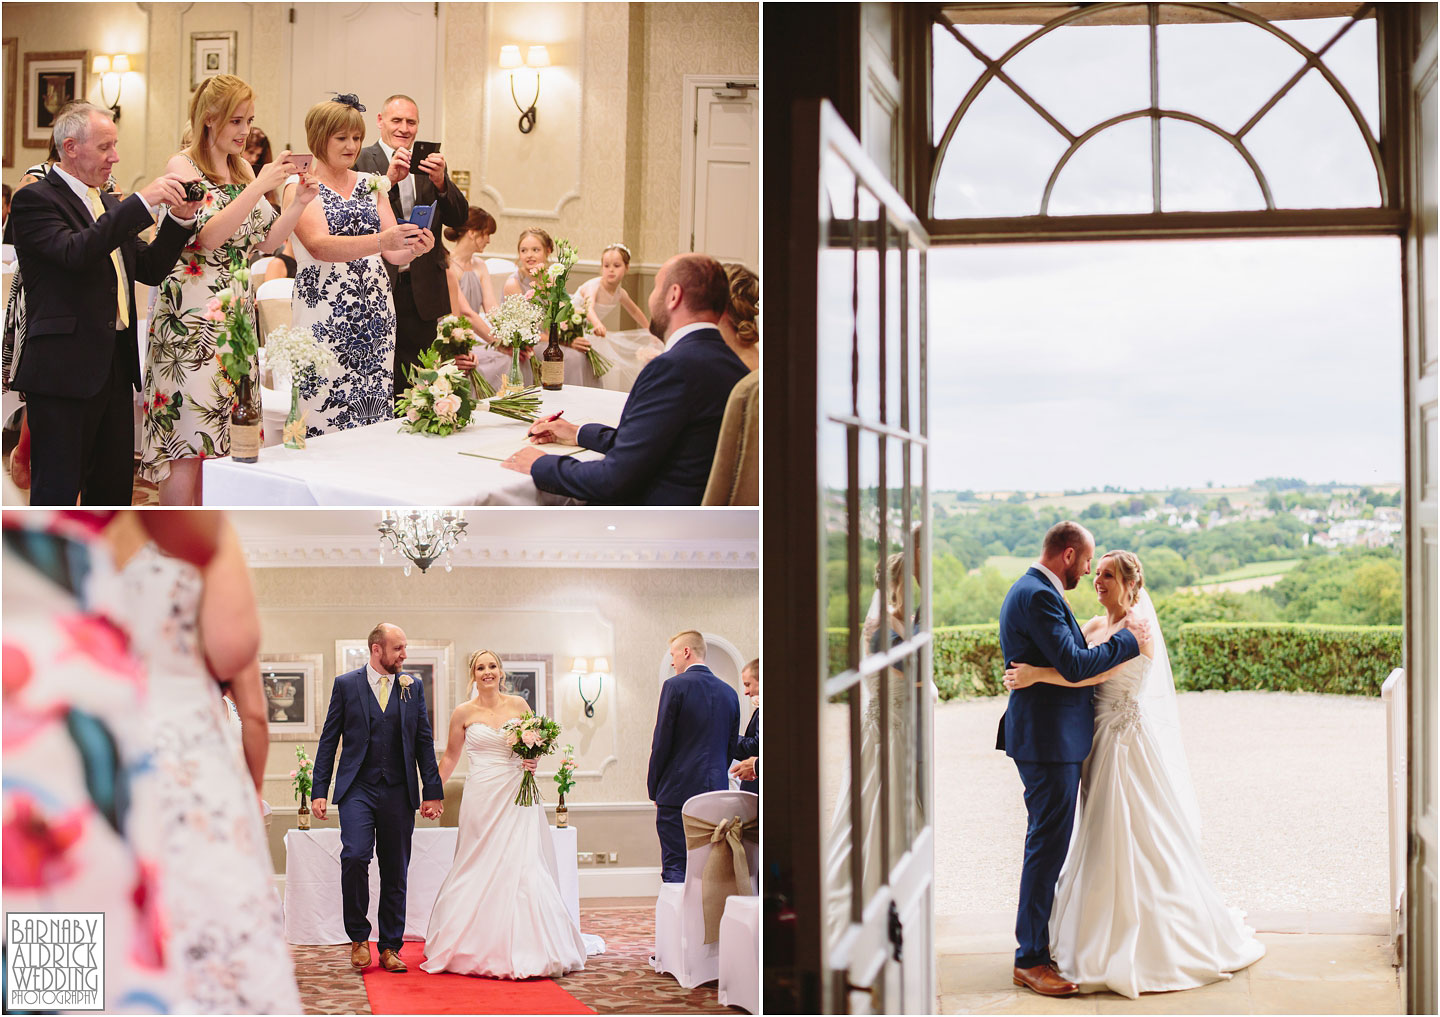 Wood Hall Hotel Wetherby ceremony images, Wood Hall Wedding Photos, Wood Hall Wedding Photographer